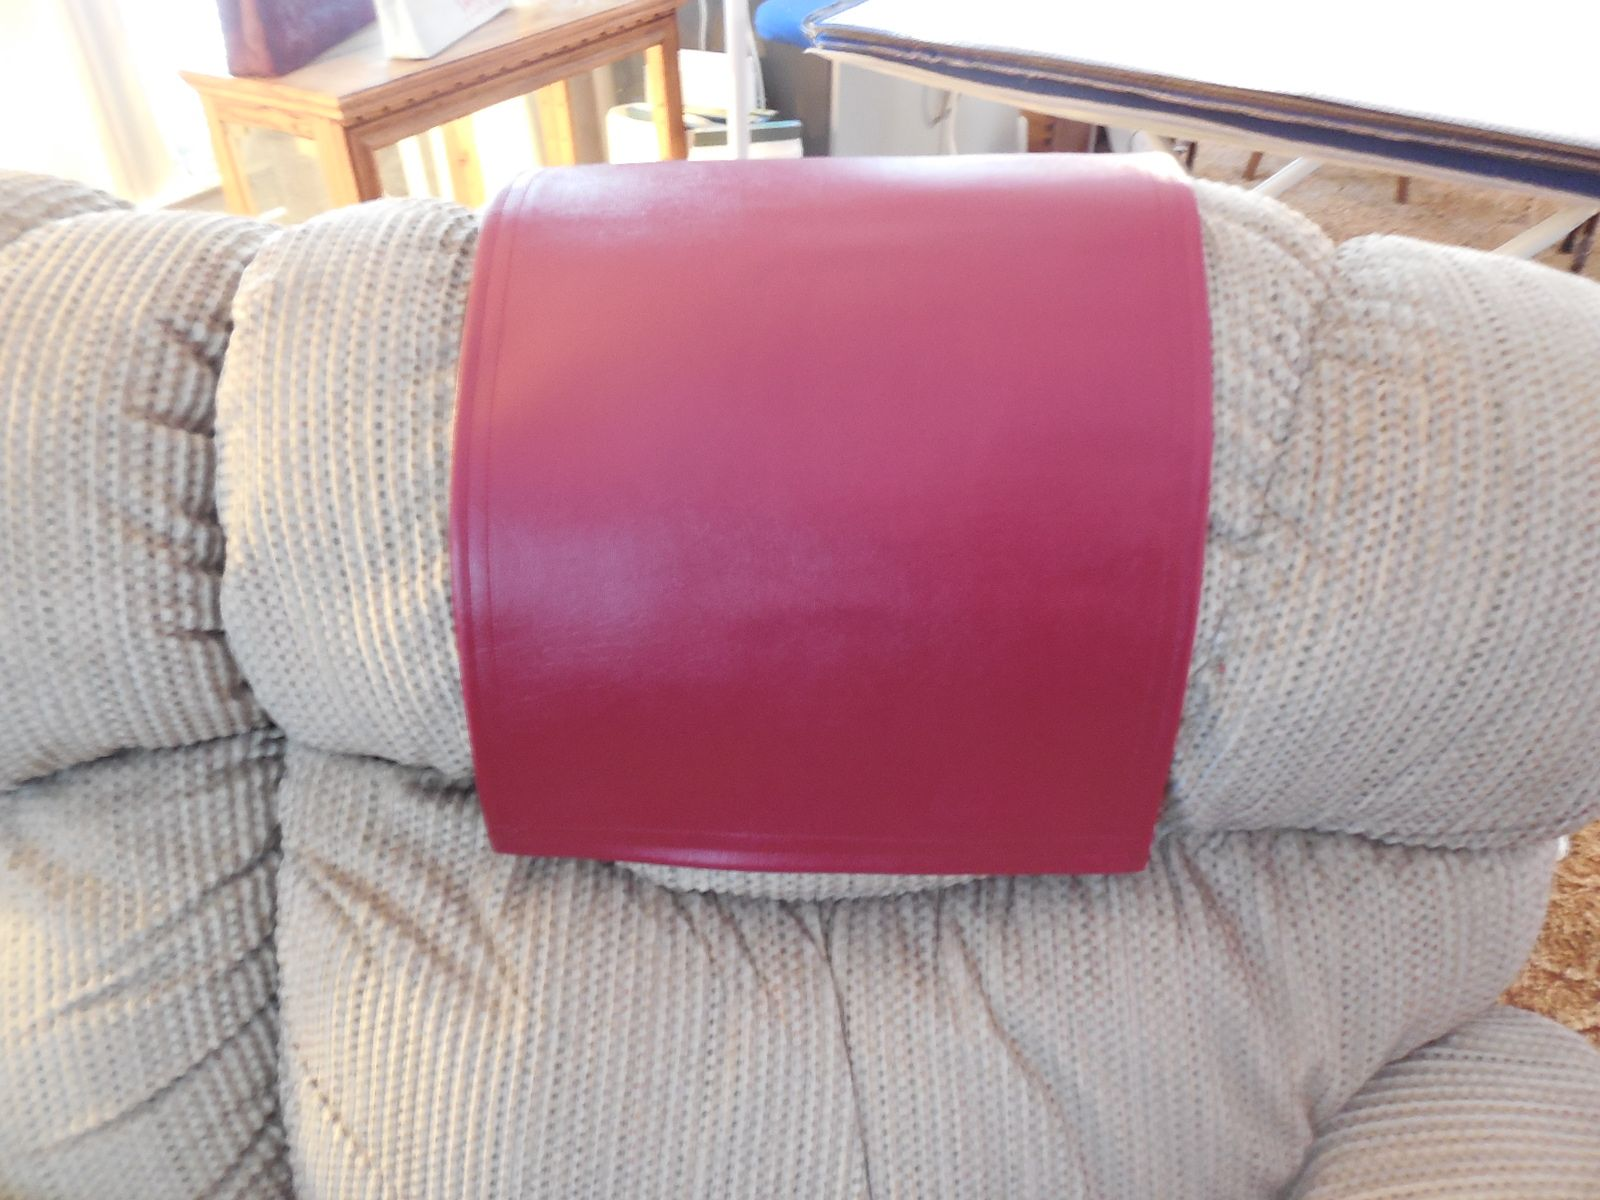 Headrest Cap for furniture will help protect your home investment